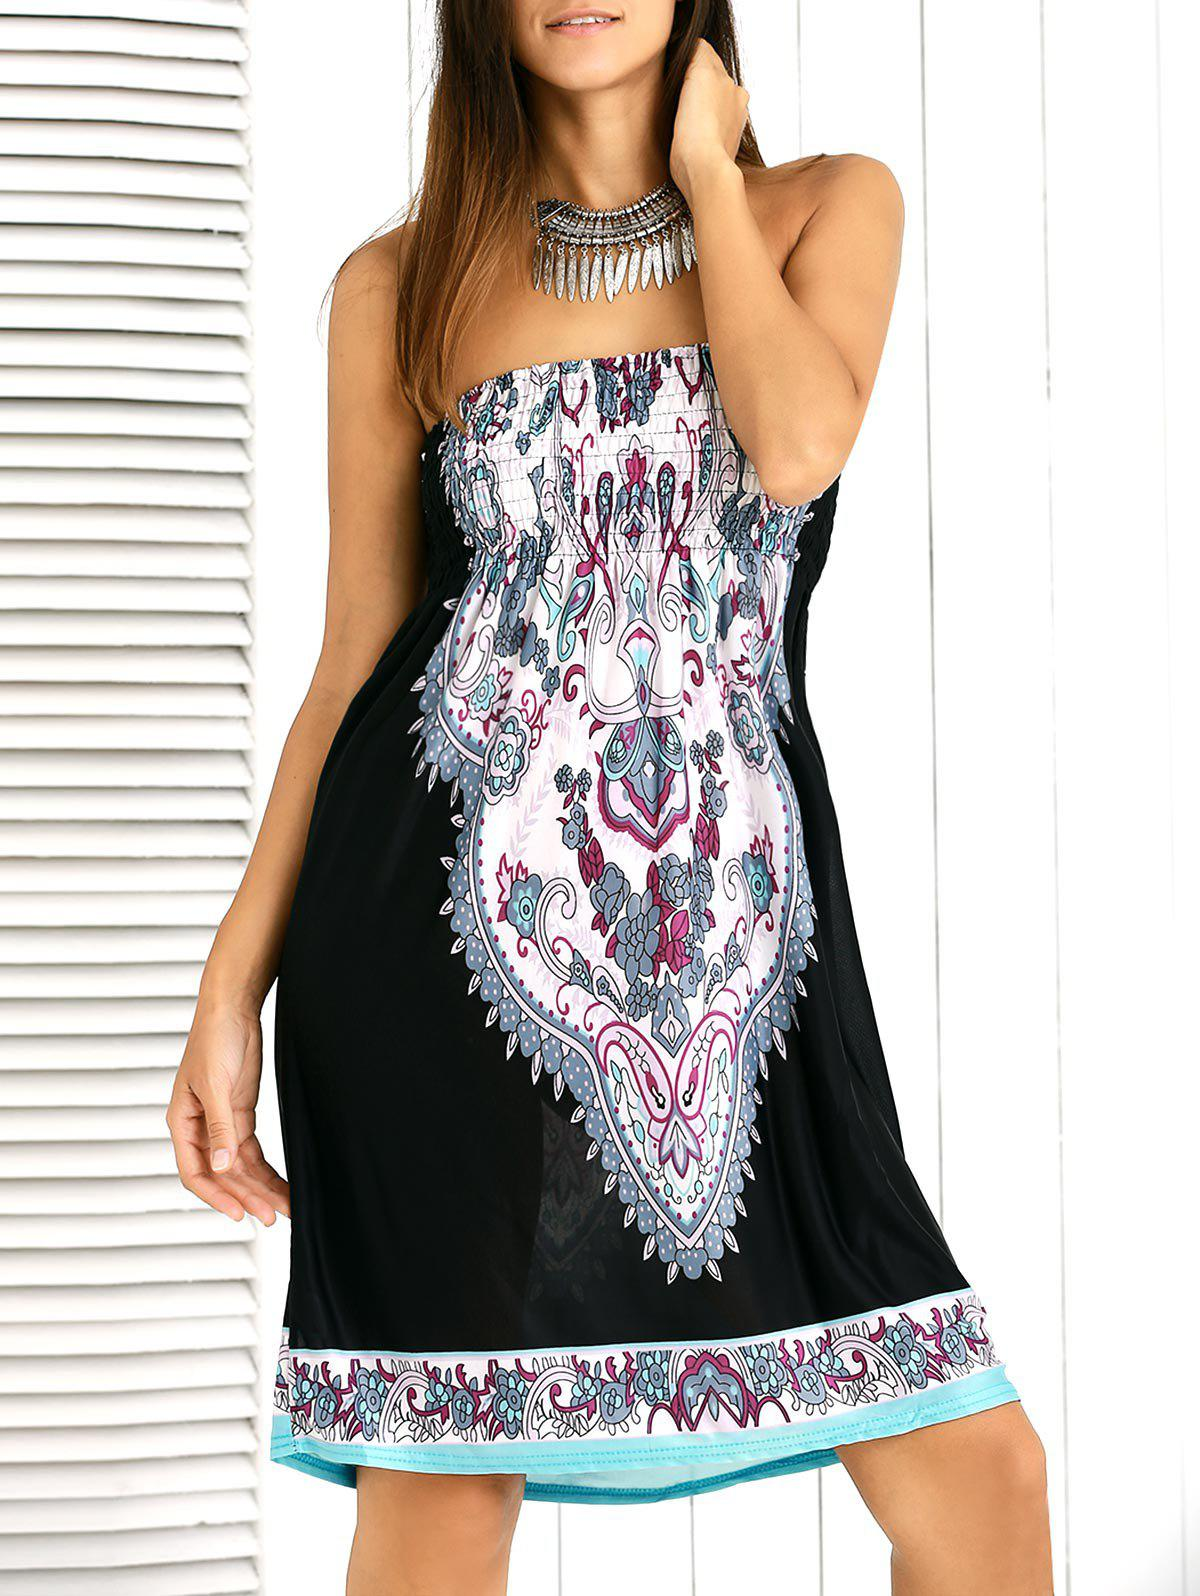 Alluring Paisley Ornate Printed Shirred Tube Dress For Women - BLACK ONE SIZE